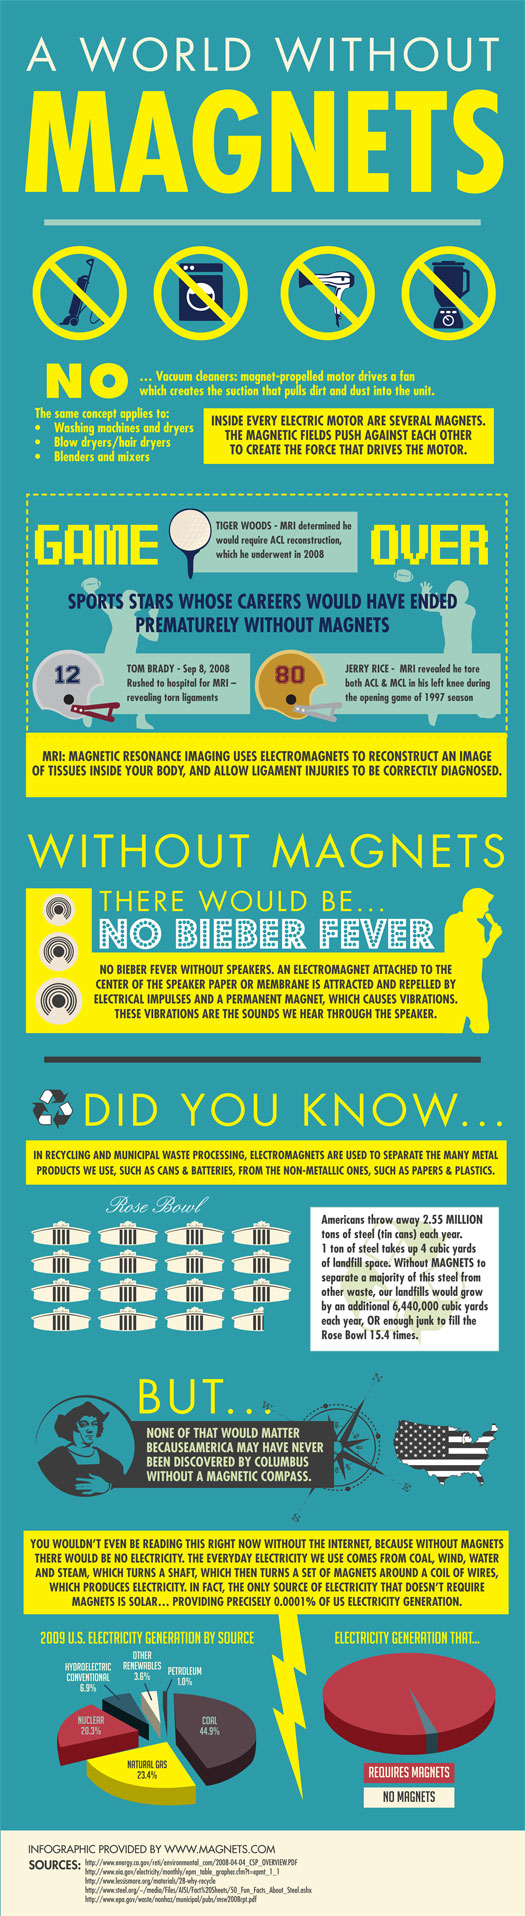 the-world-without-magnets_5065e9735079d